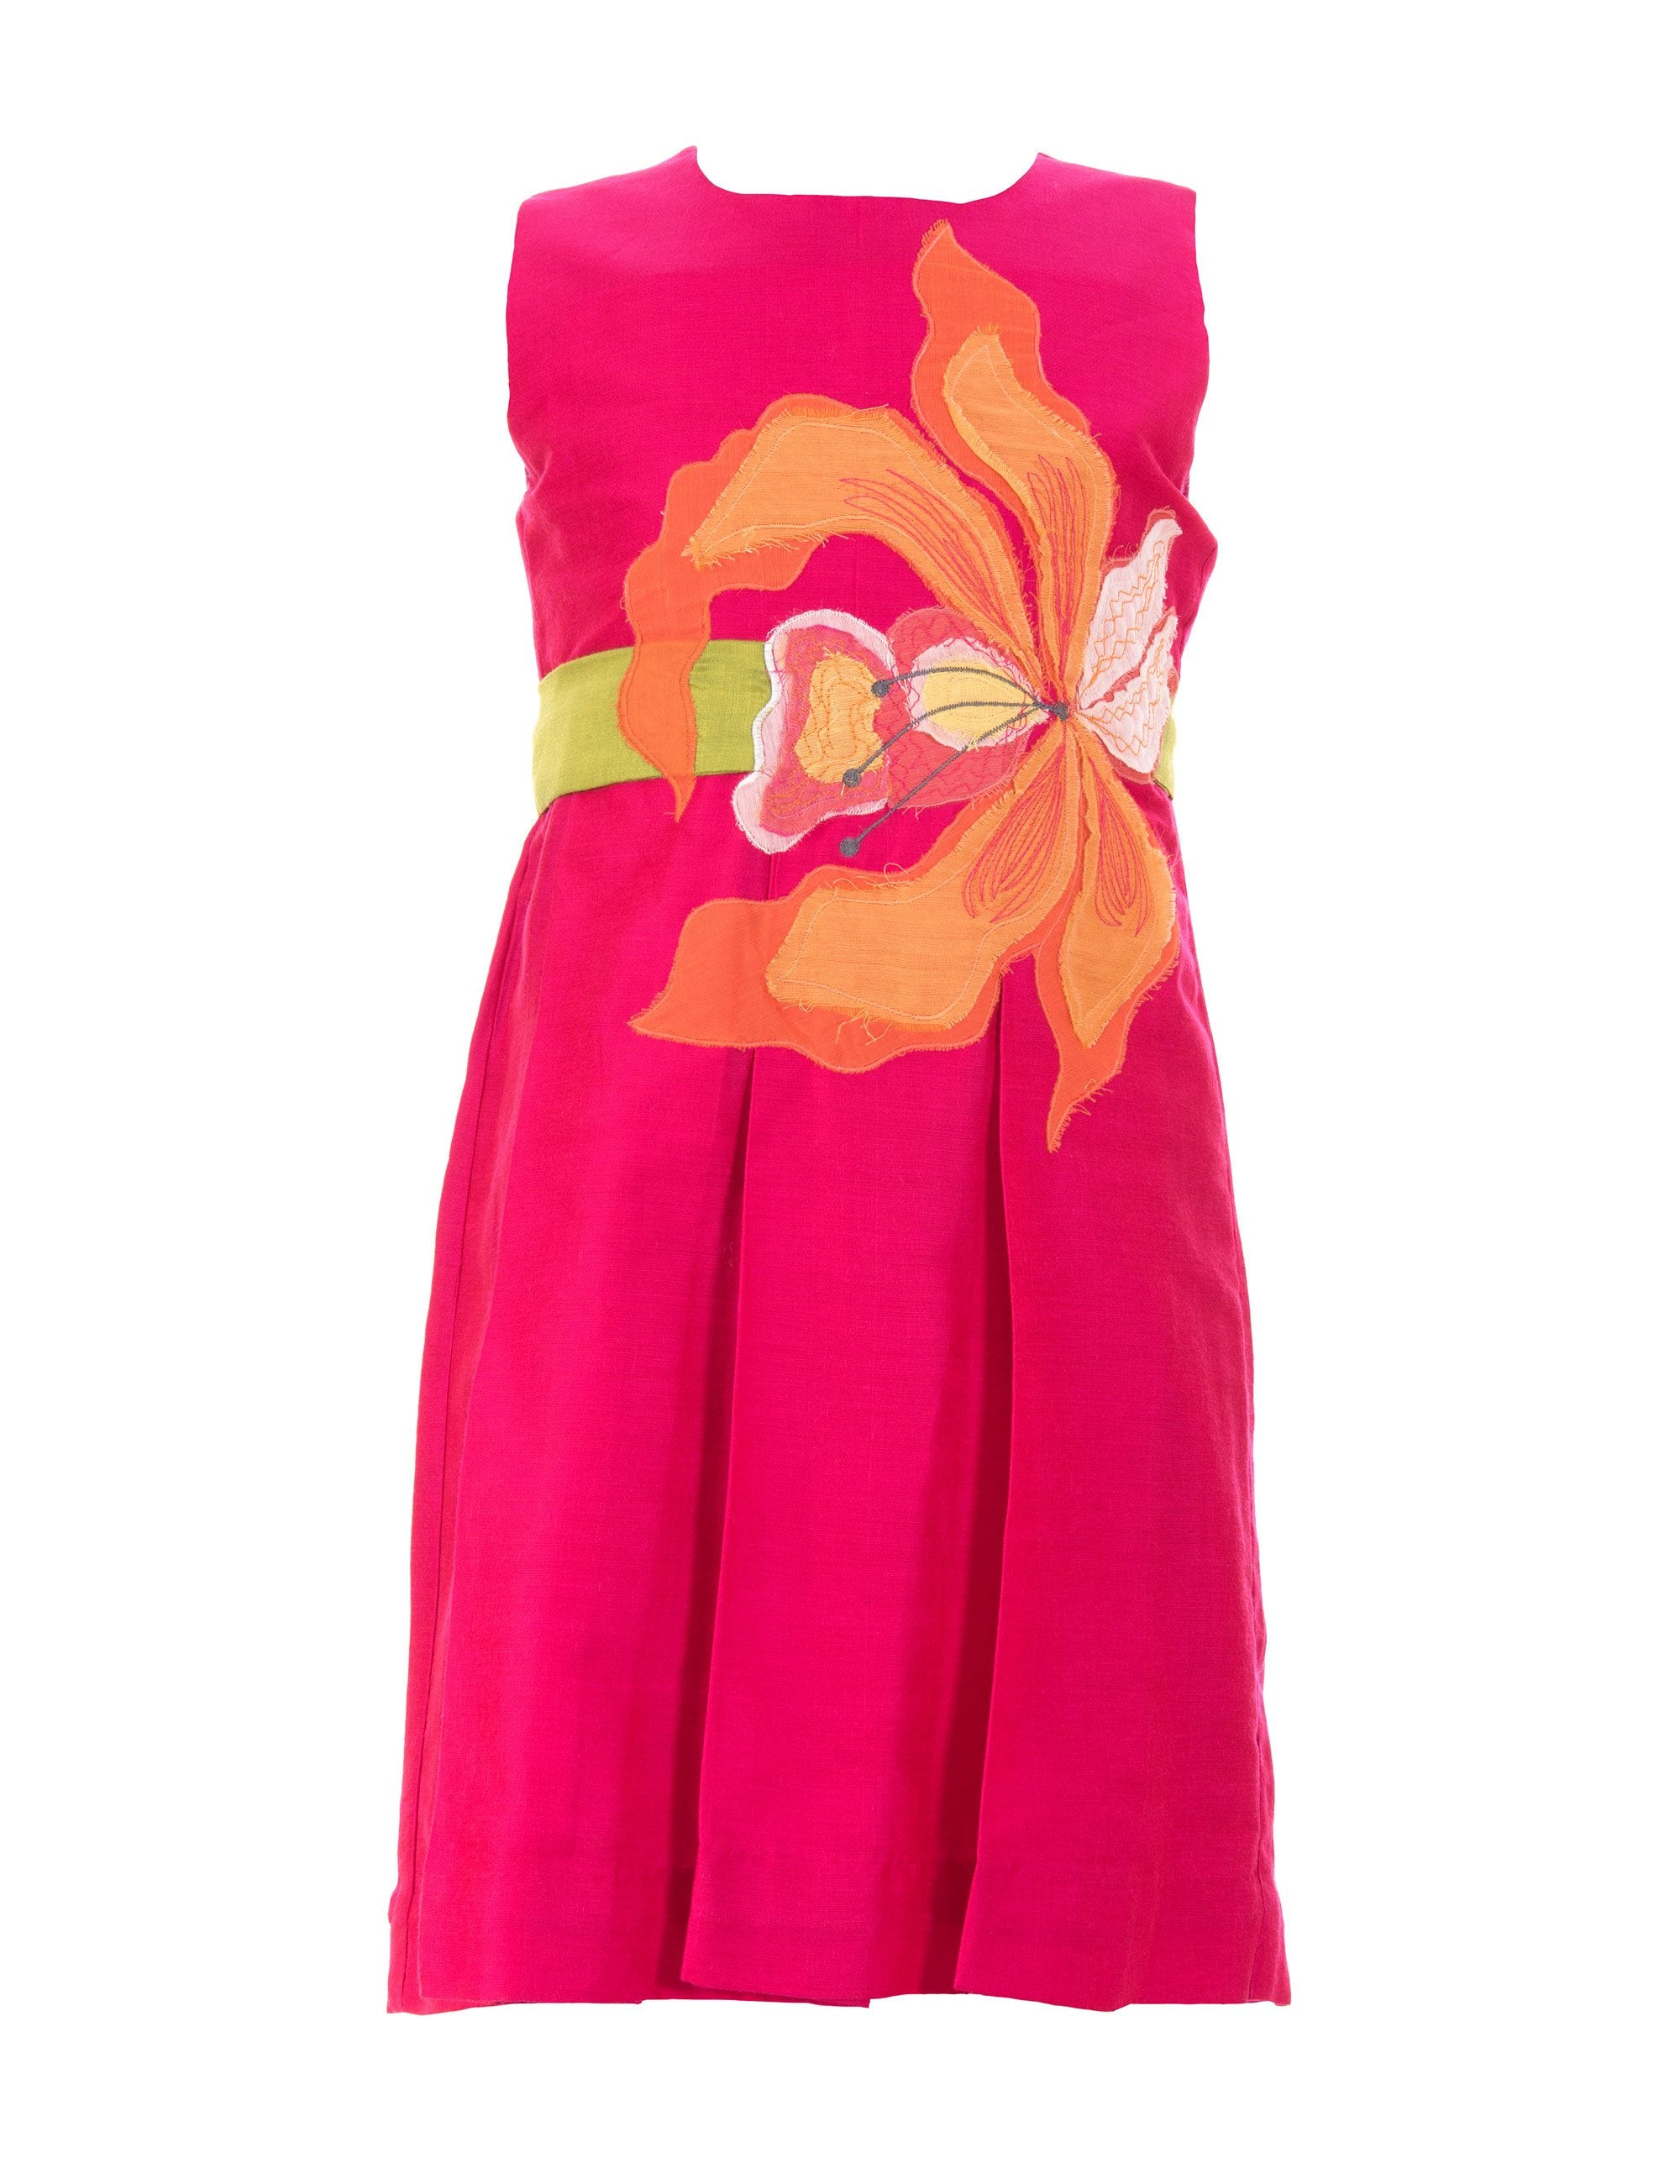 Flower Applique Dress in Pink for Girls